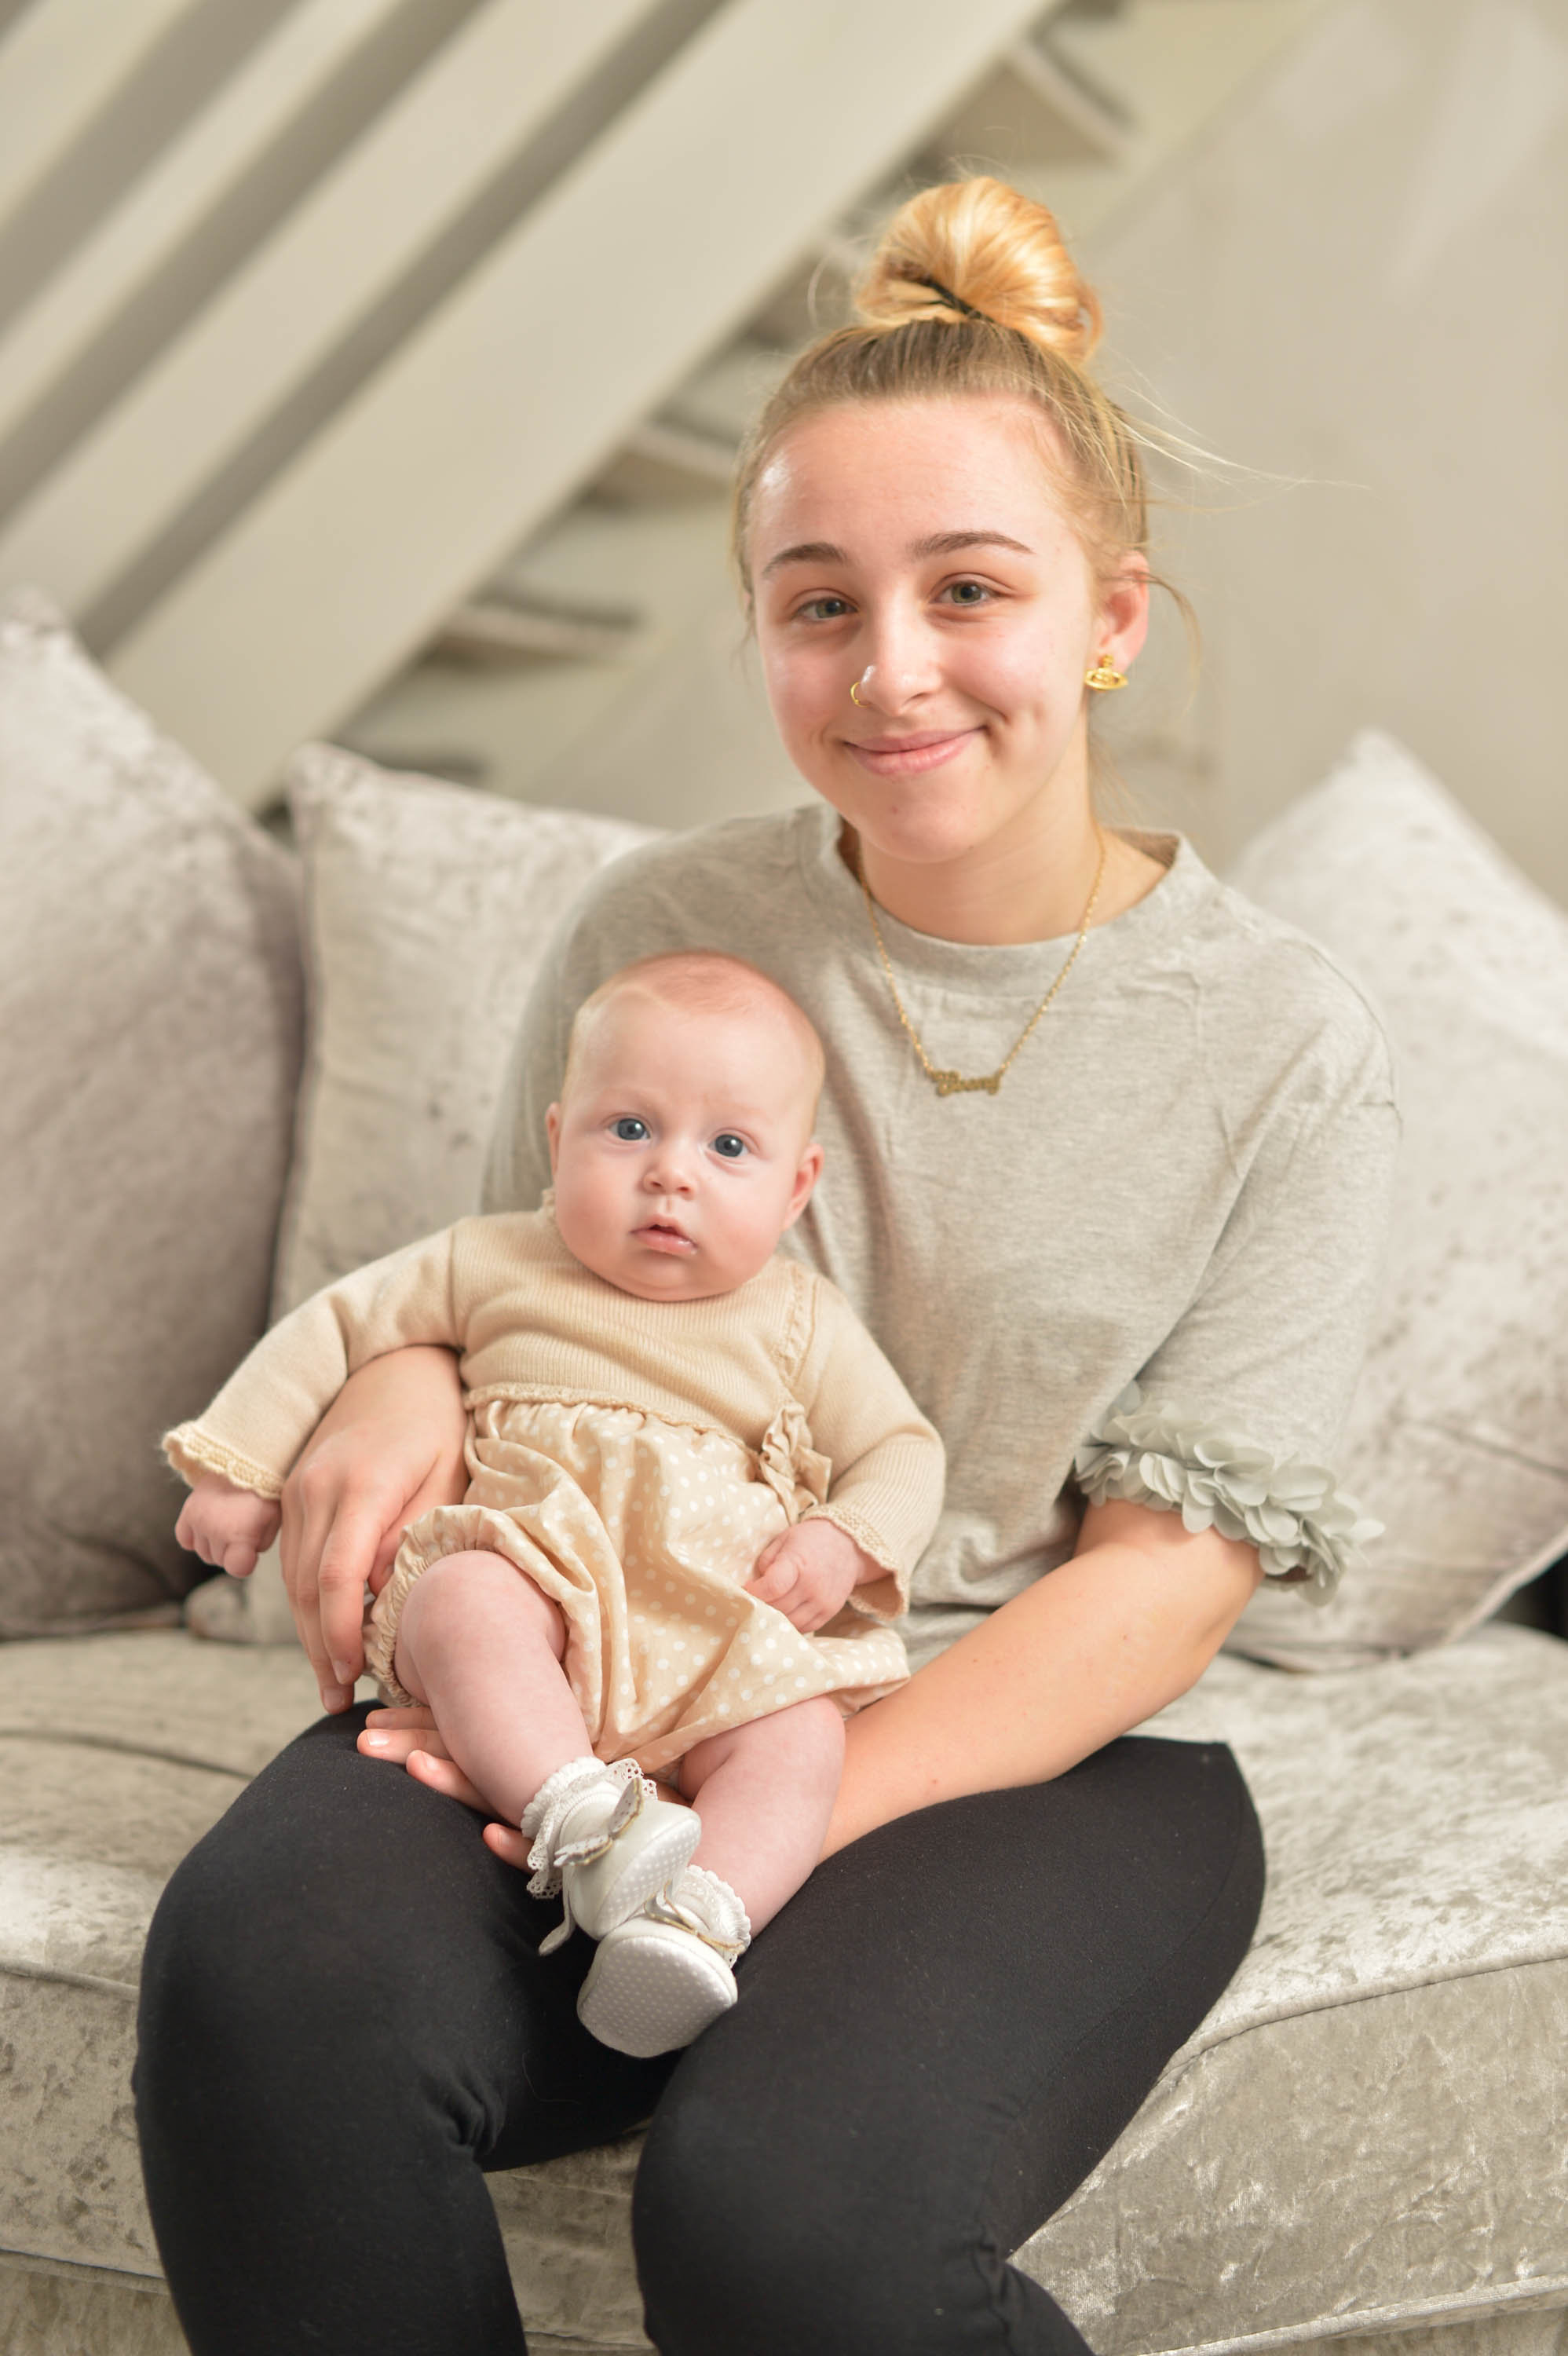 Teen wakes up from coma to baby